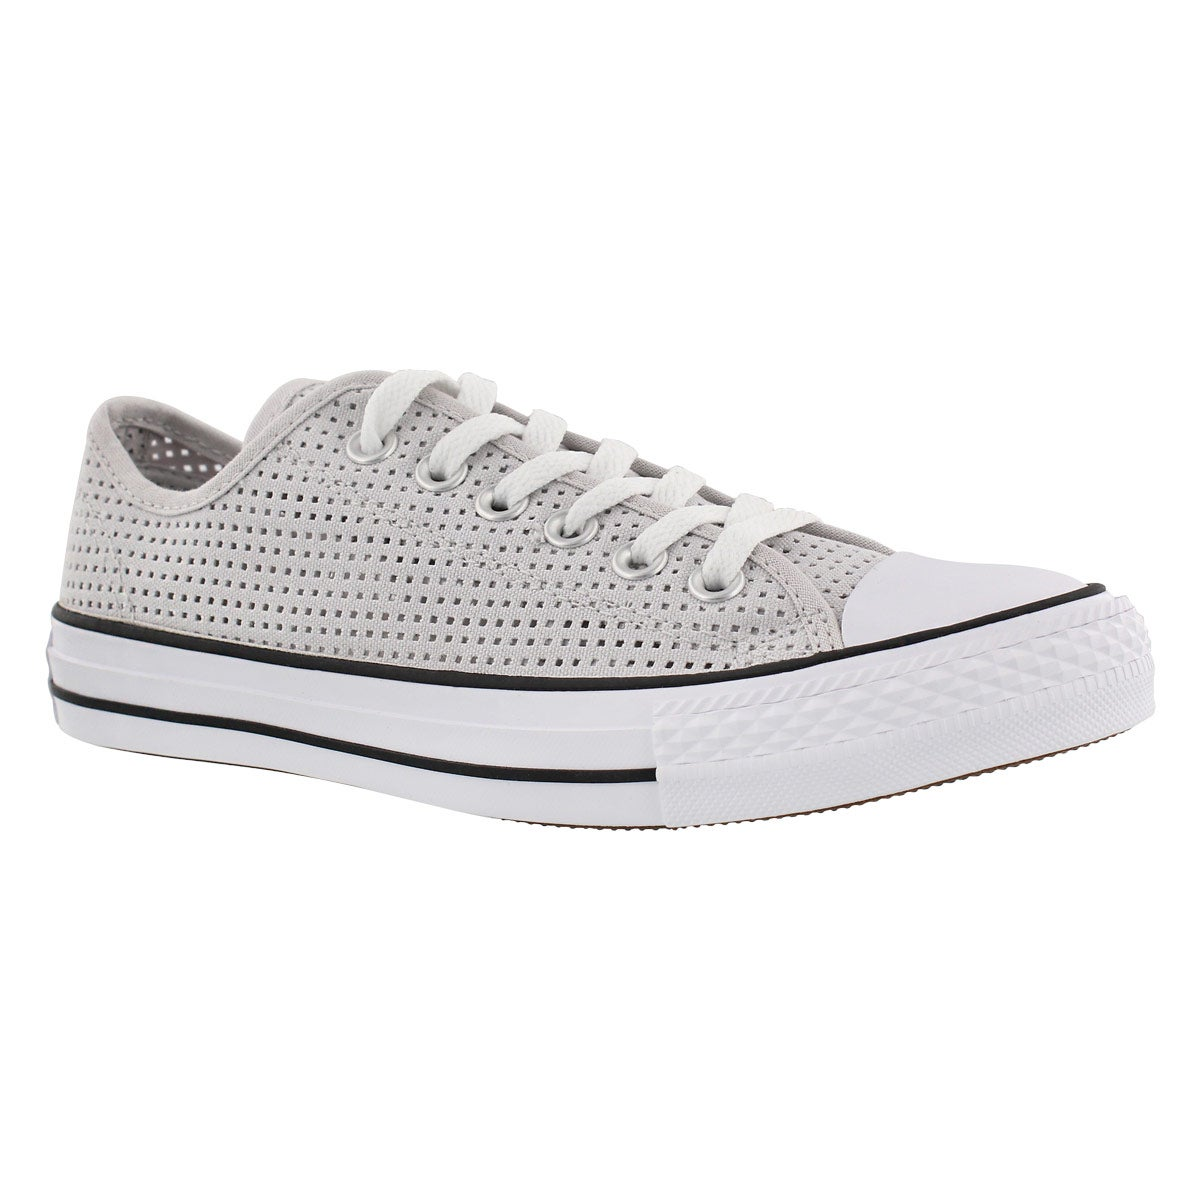 Women's CT ALL STAR PERFORATED CANVAS oxfords